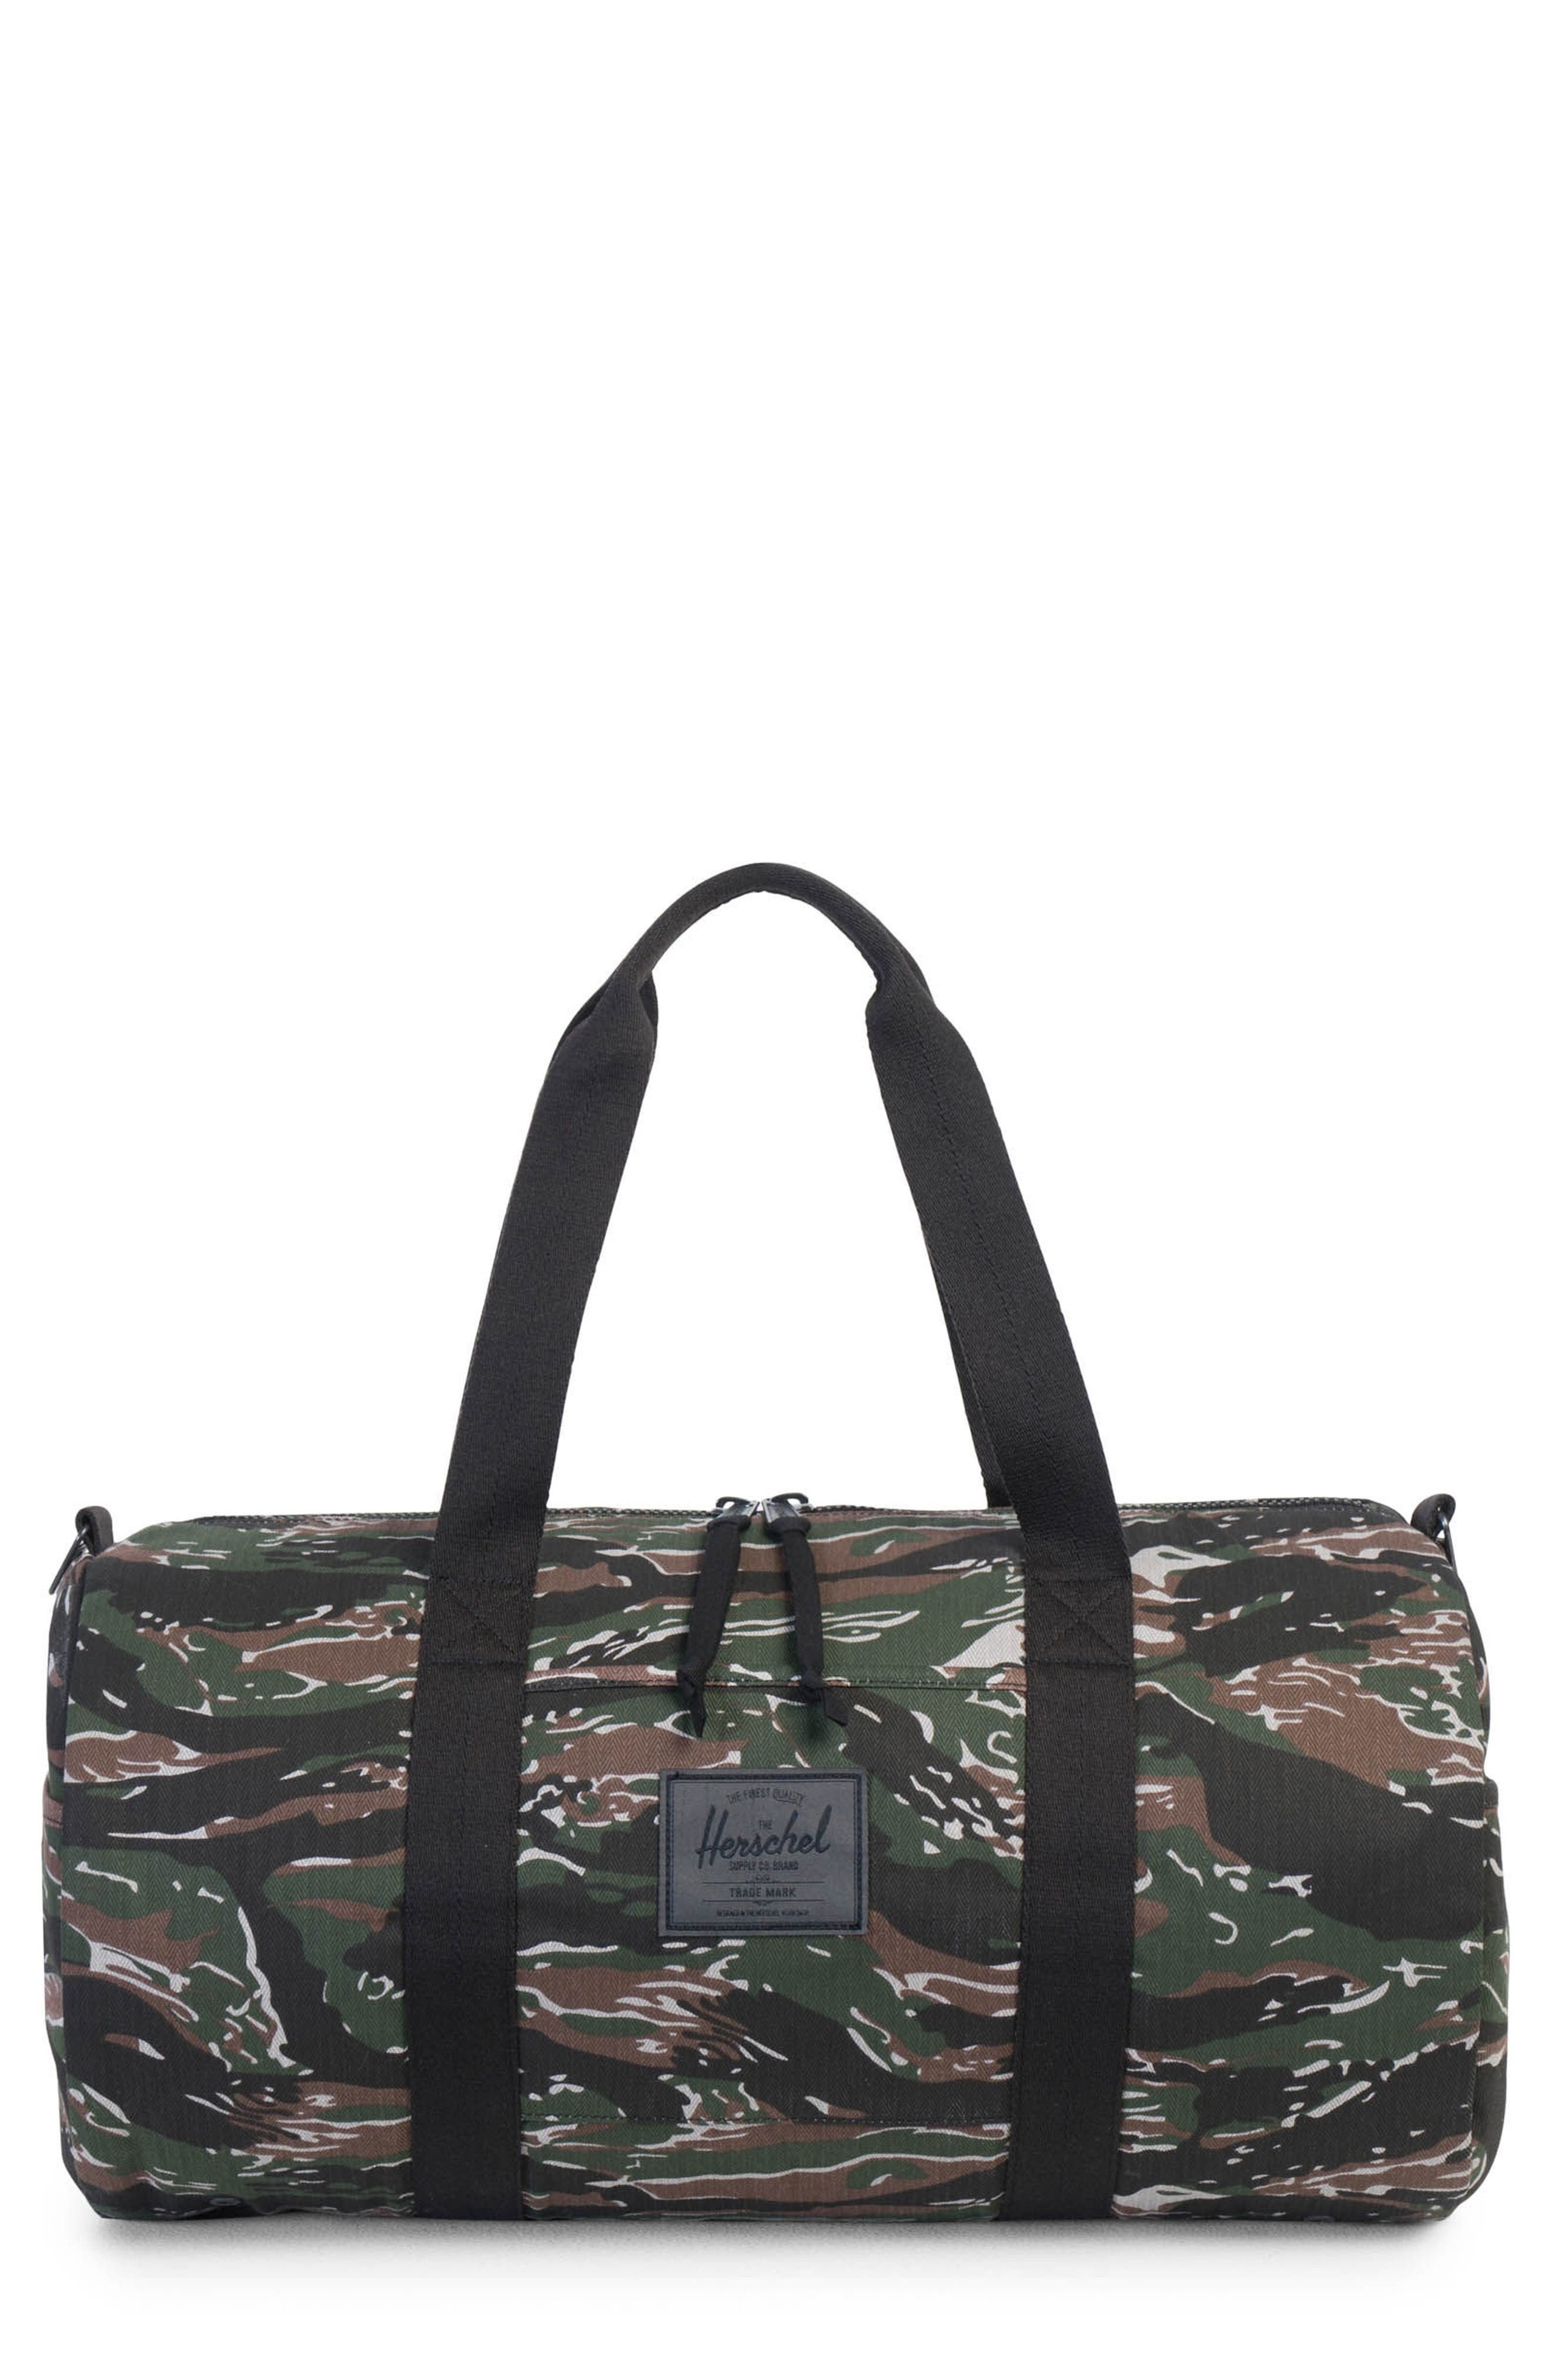 Alternate Image 1 Selected - Herschel Supply Co. Sutton Surplus Duffel Bag